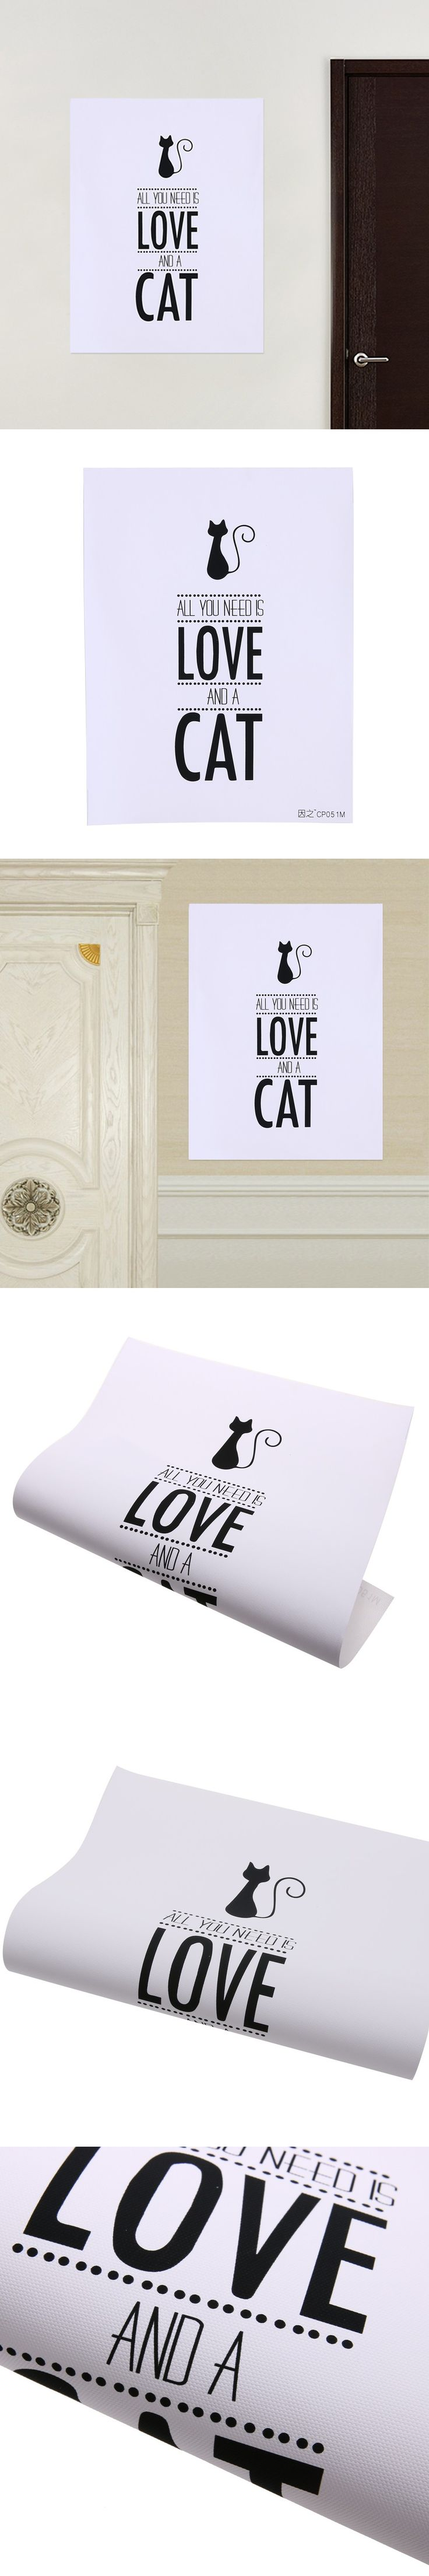 best 25 minimalist wall stickers ideas on pinterest triangle 30 40cm black cat frameless wall stickers modern minimalist wall paintings canvas cat figure room wall picture home decor ca1t